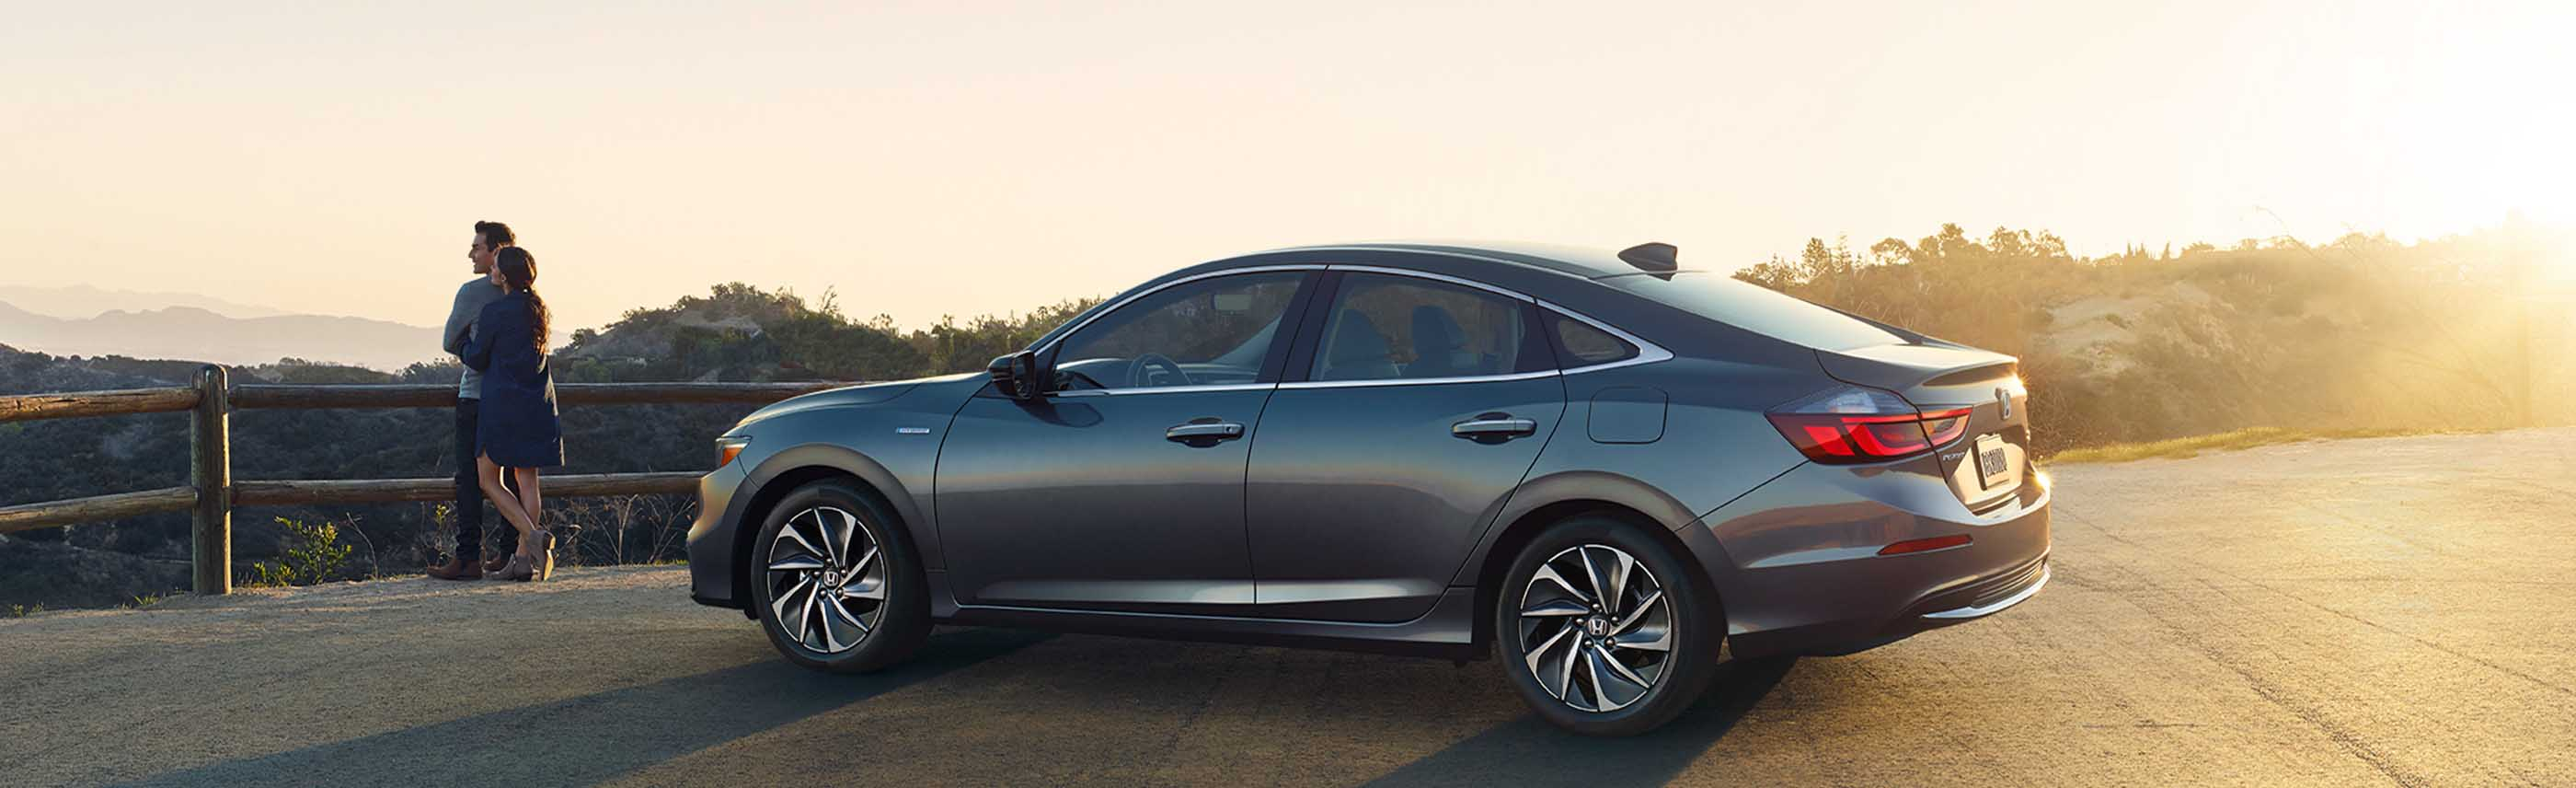 Meet The 2021 Honda Insight Hybrid In Columbia Near Mexico, MO